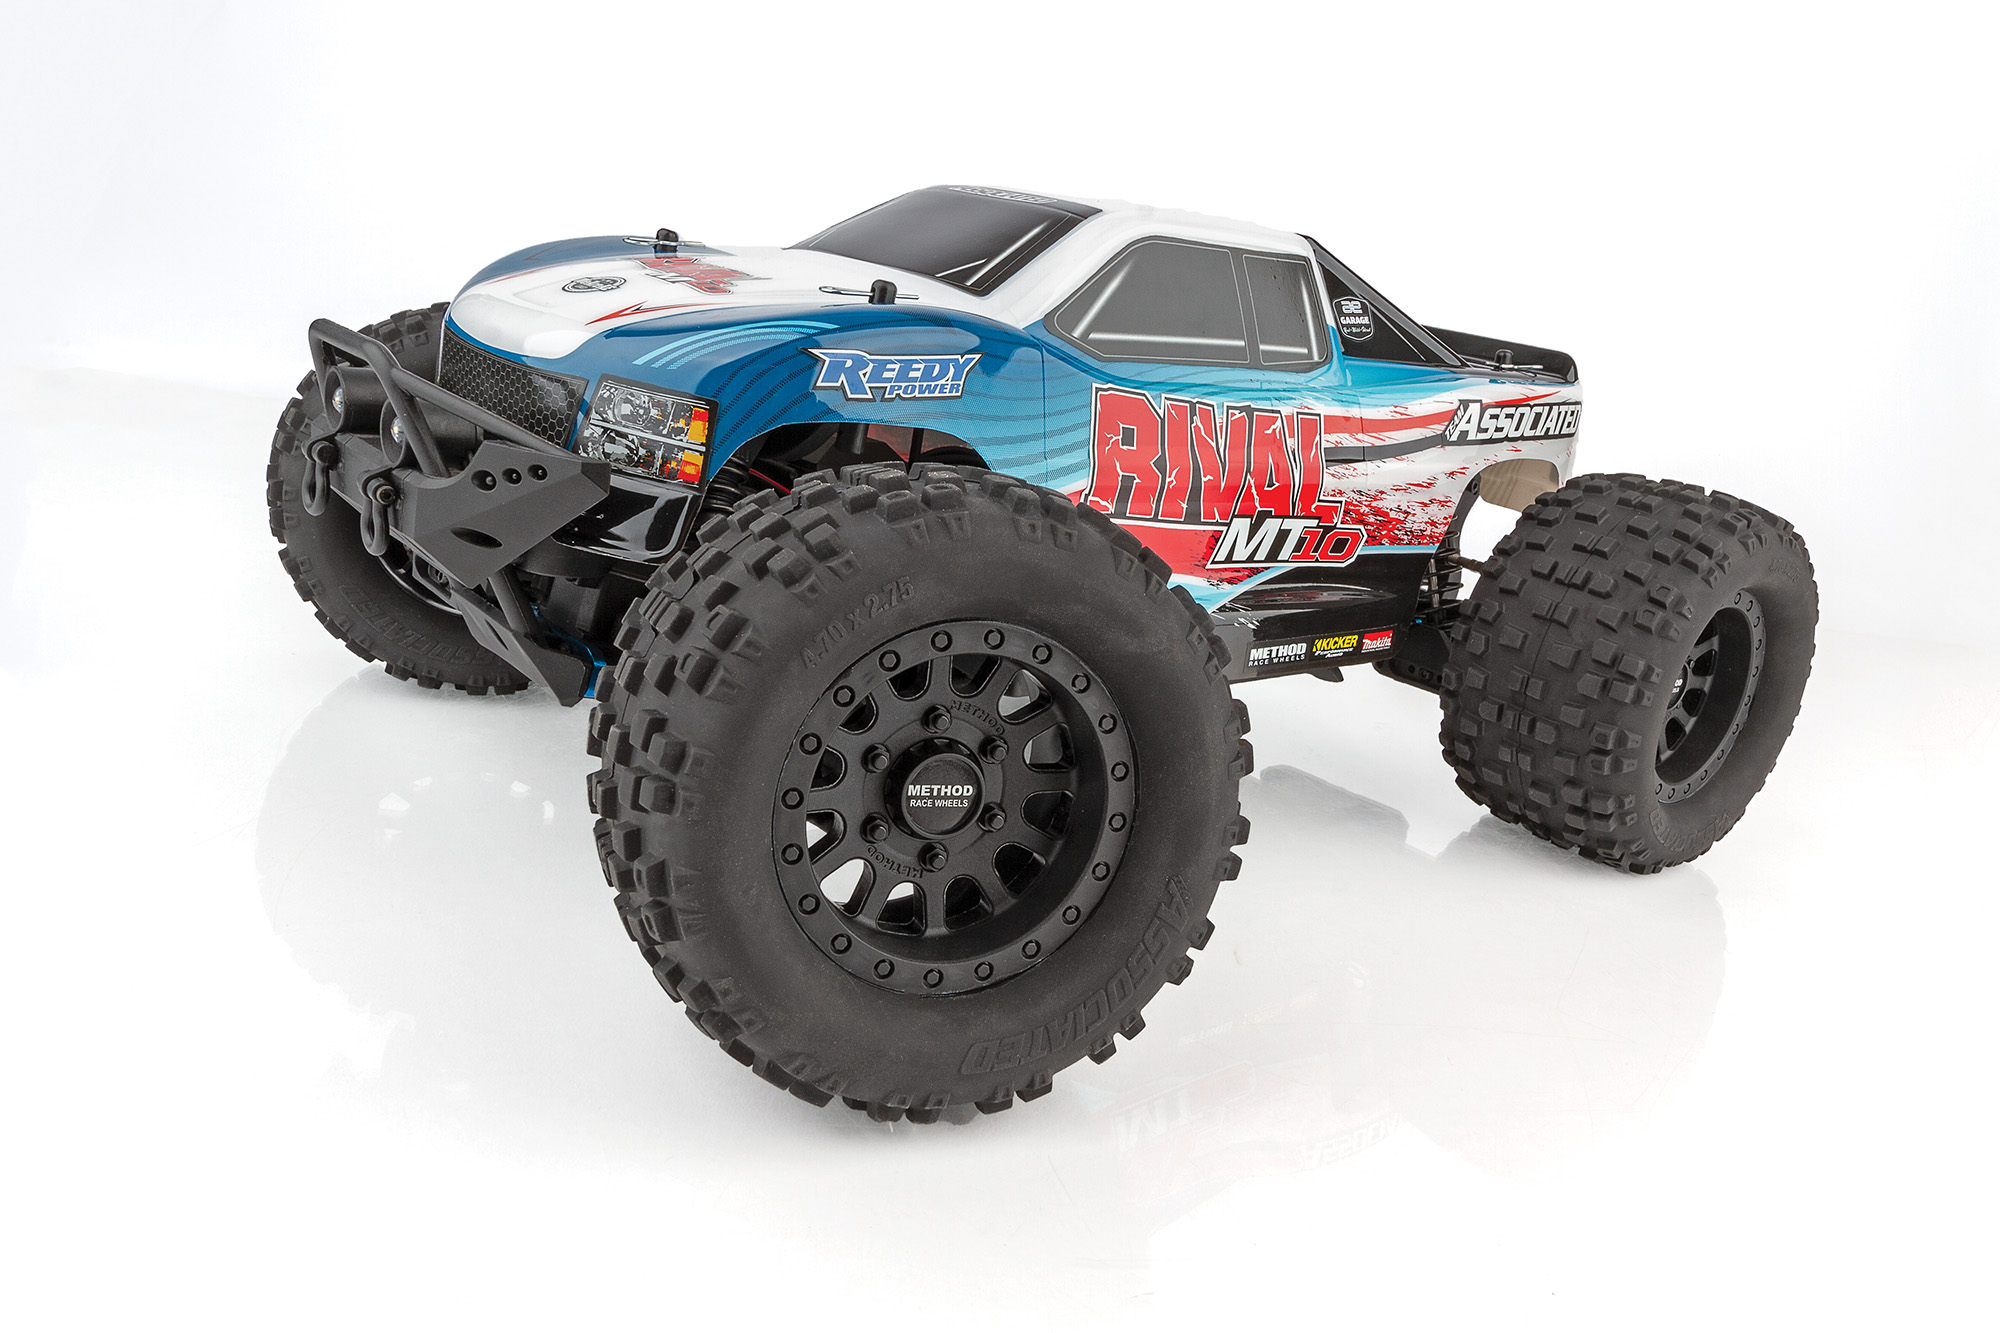 Rival MT10 Off Road Electric RTR, 4WD